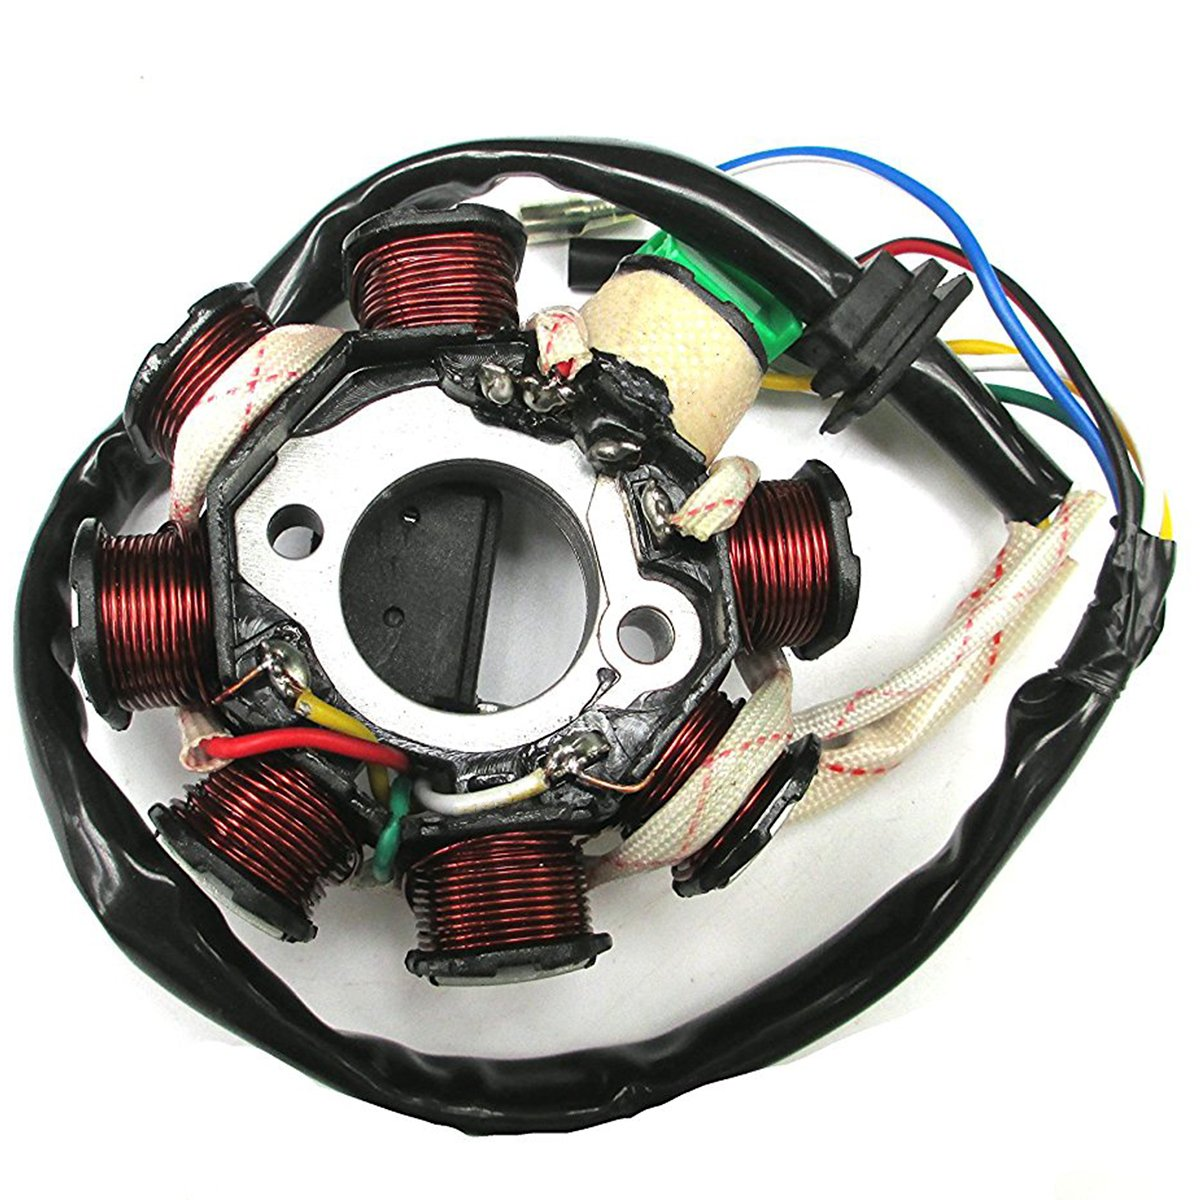 Triumilynn Magneto Stator Ignition Generator 8 Pole Coils Fits GY6 125 150cc Moped Scooter Go Kart ATV